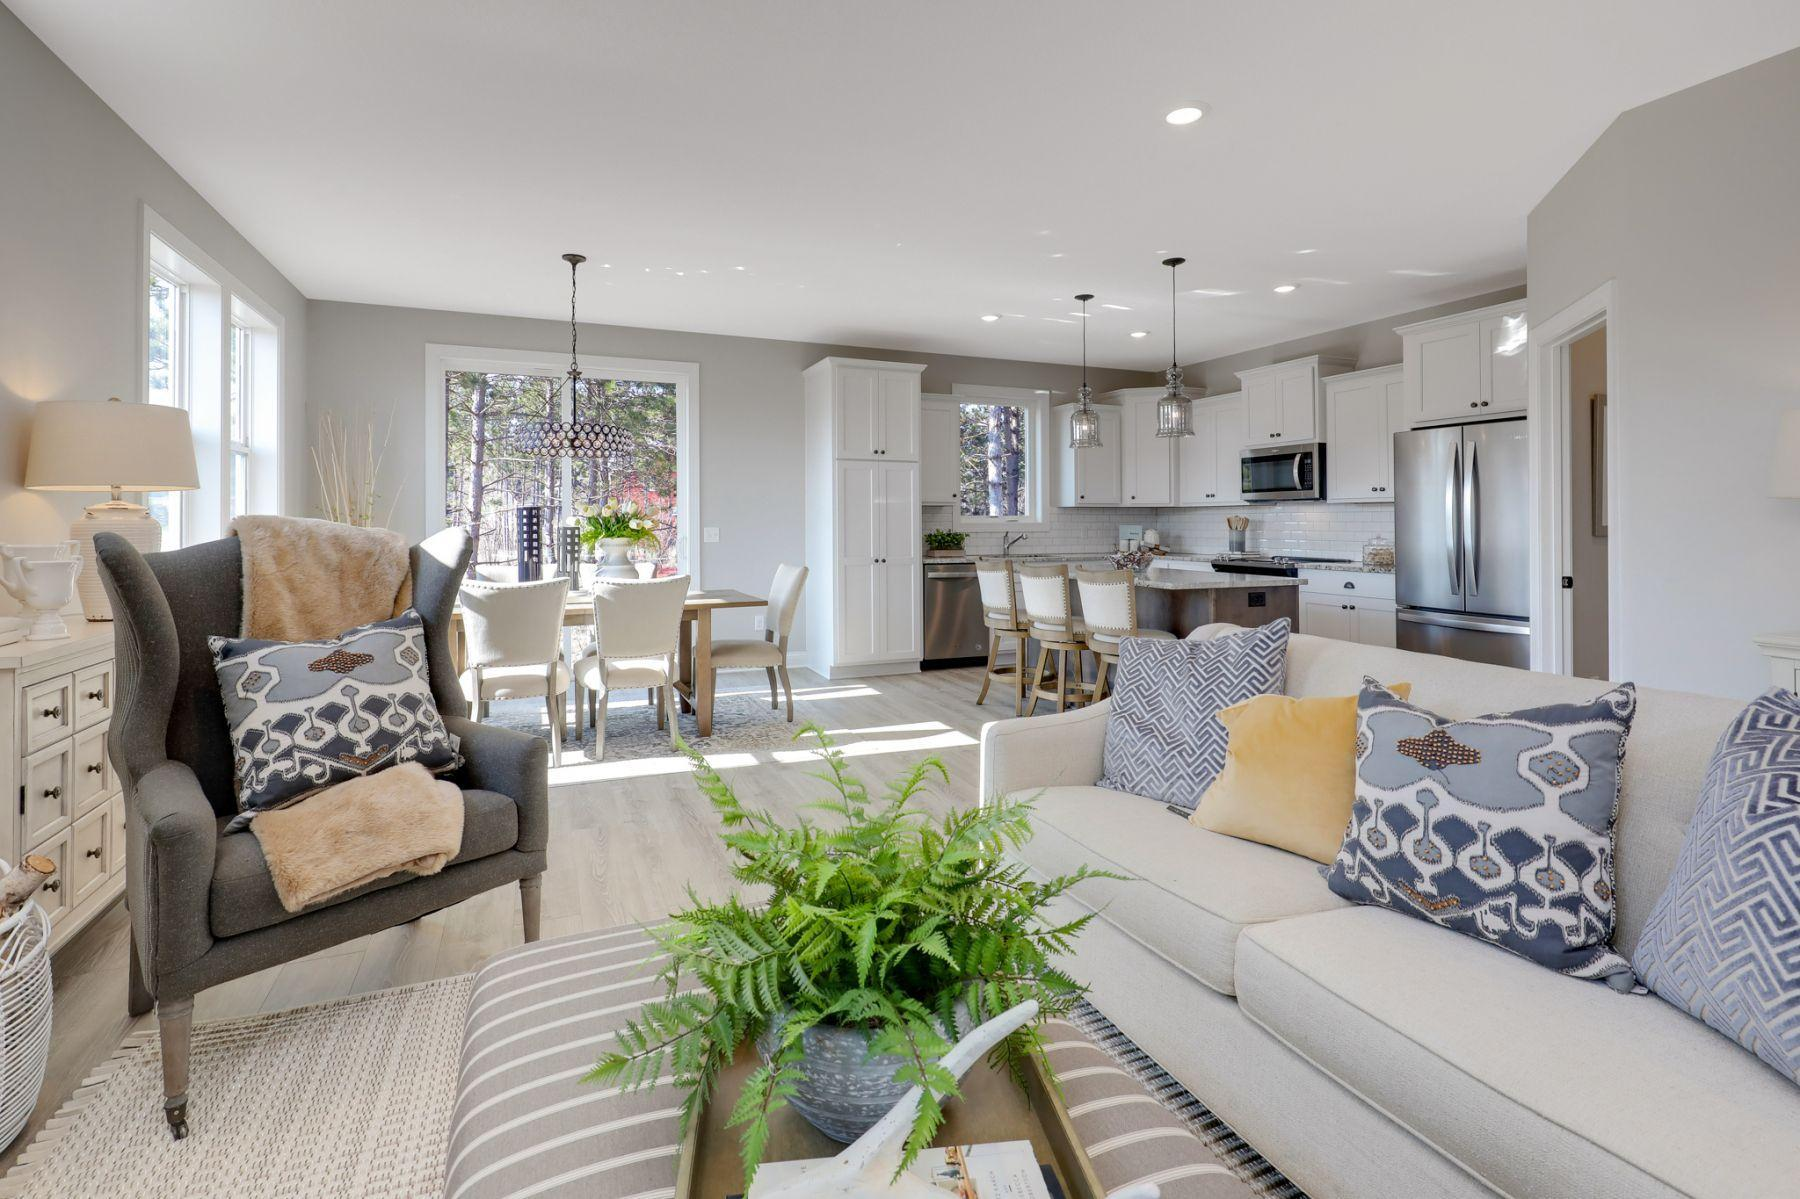 'Willow River Bluffs' by Creative Homes in Minneapolis-St. Paul